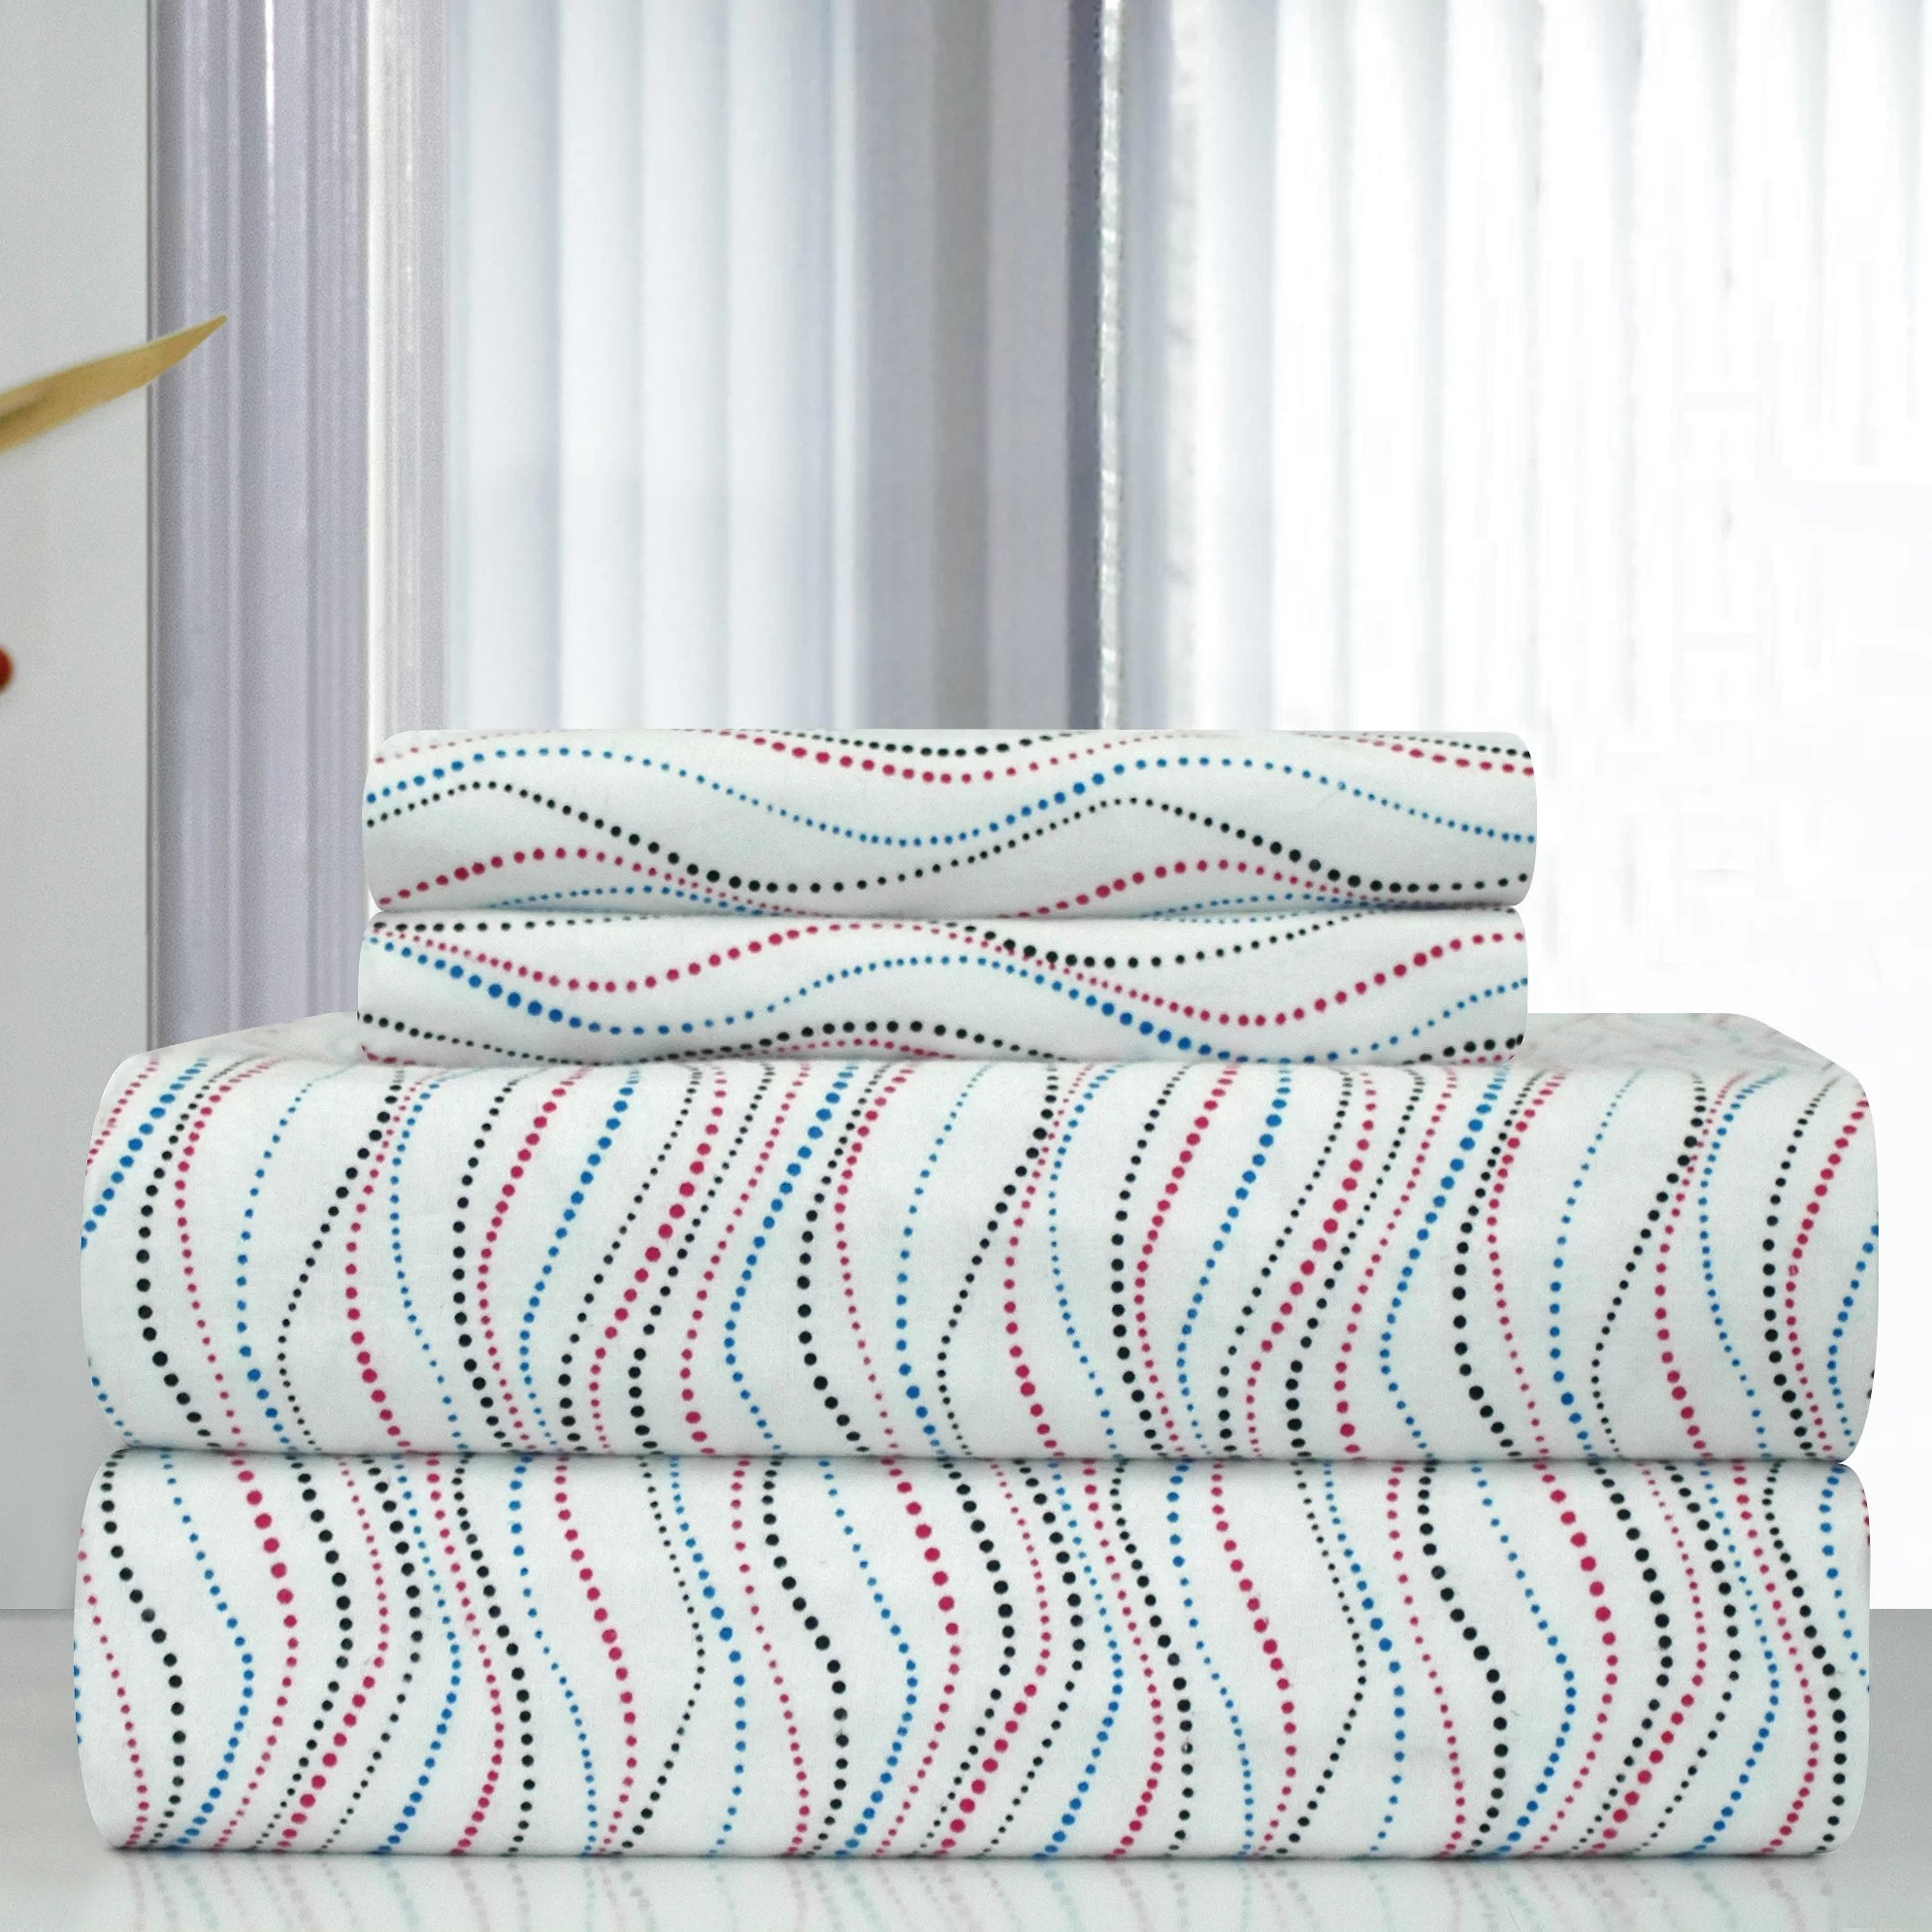 Printed Sheet Sets Heavy Weight Metro Printed Flannel Sheet Set